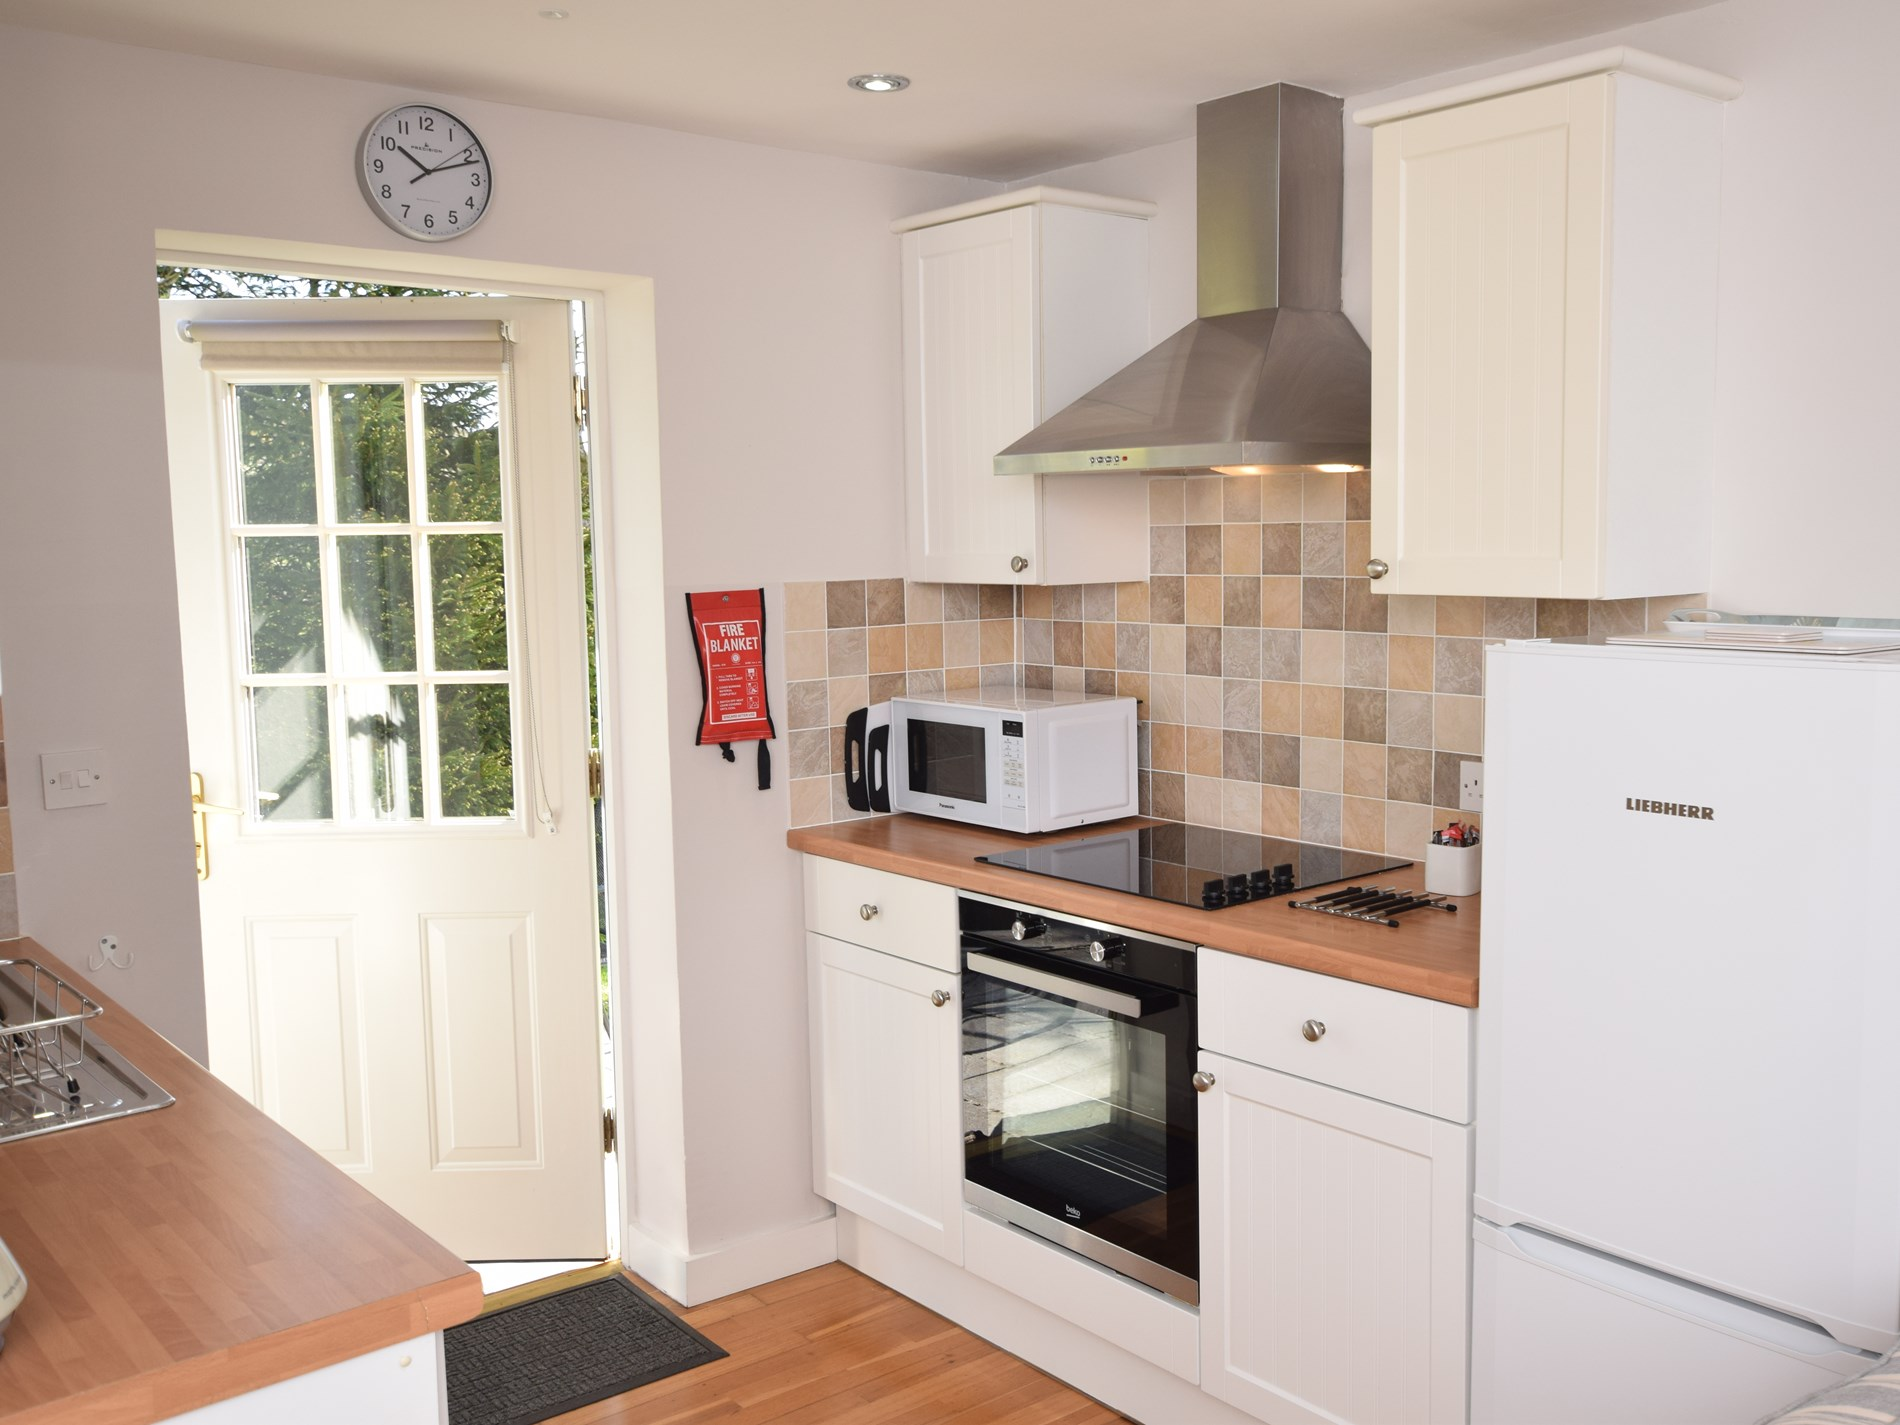 1 Bedroom Cottage in North Cornwall, Cornwall